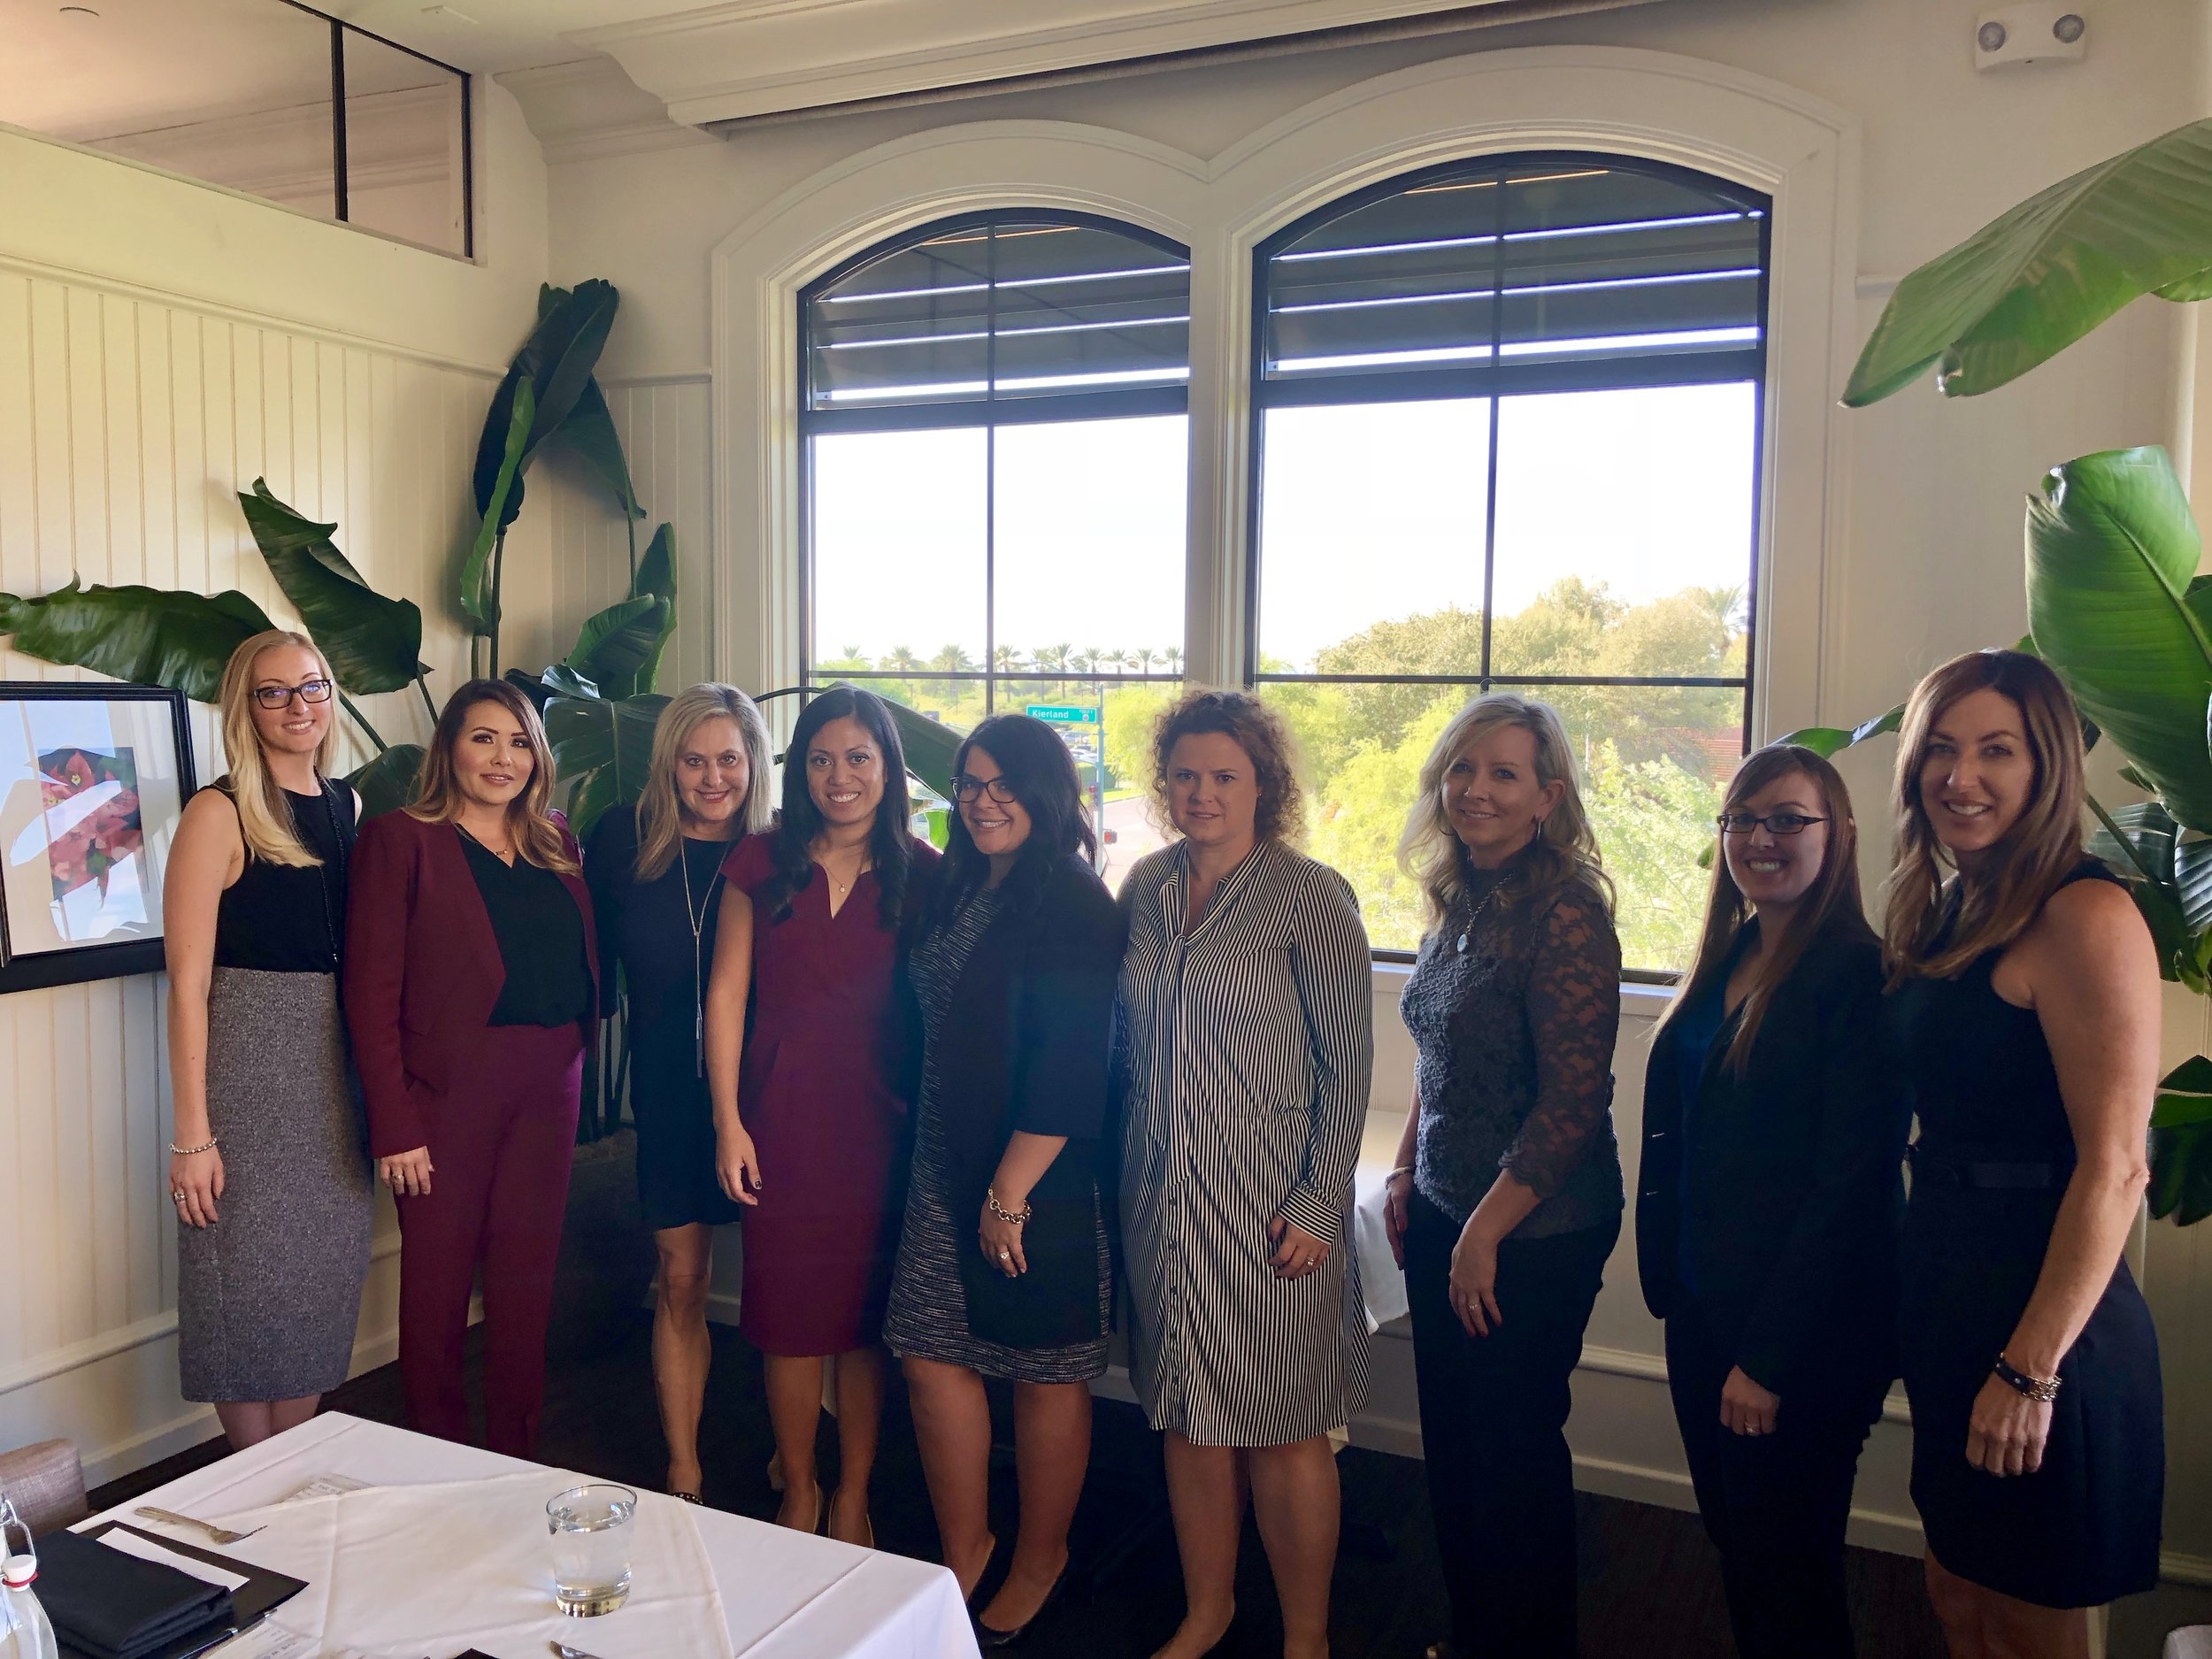 Pictured from left to right: Alissia Zenhausern, Angela Lowery, Lisa Payne, North Scottsdale Chapter Head Rea Mayer, Analise Zaremba, Unknown, Unknown, Unknown, and Susan Underwood.